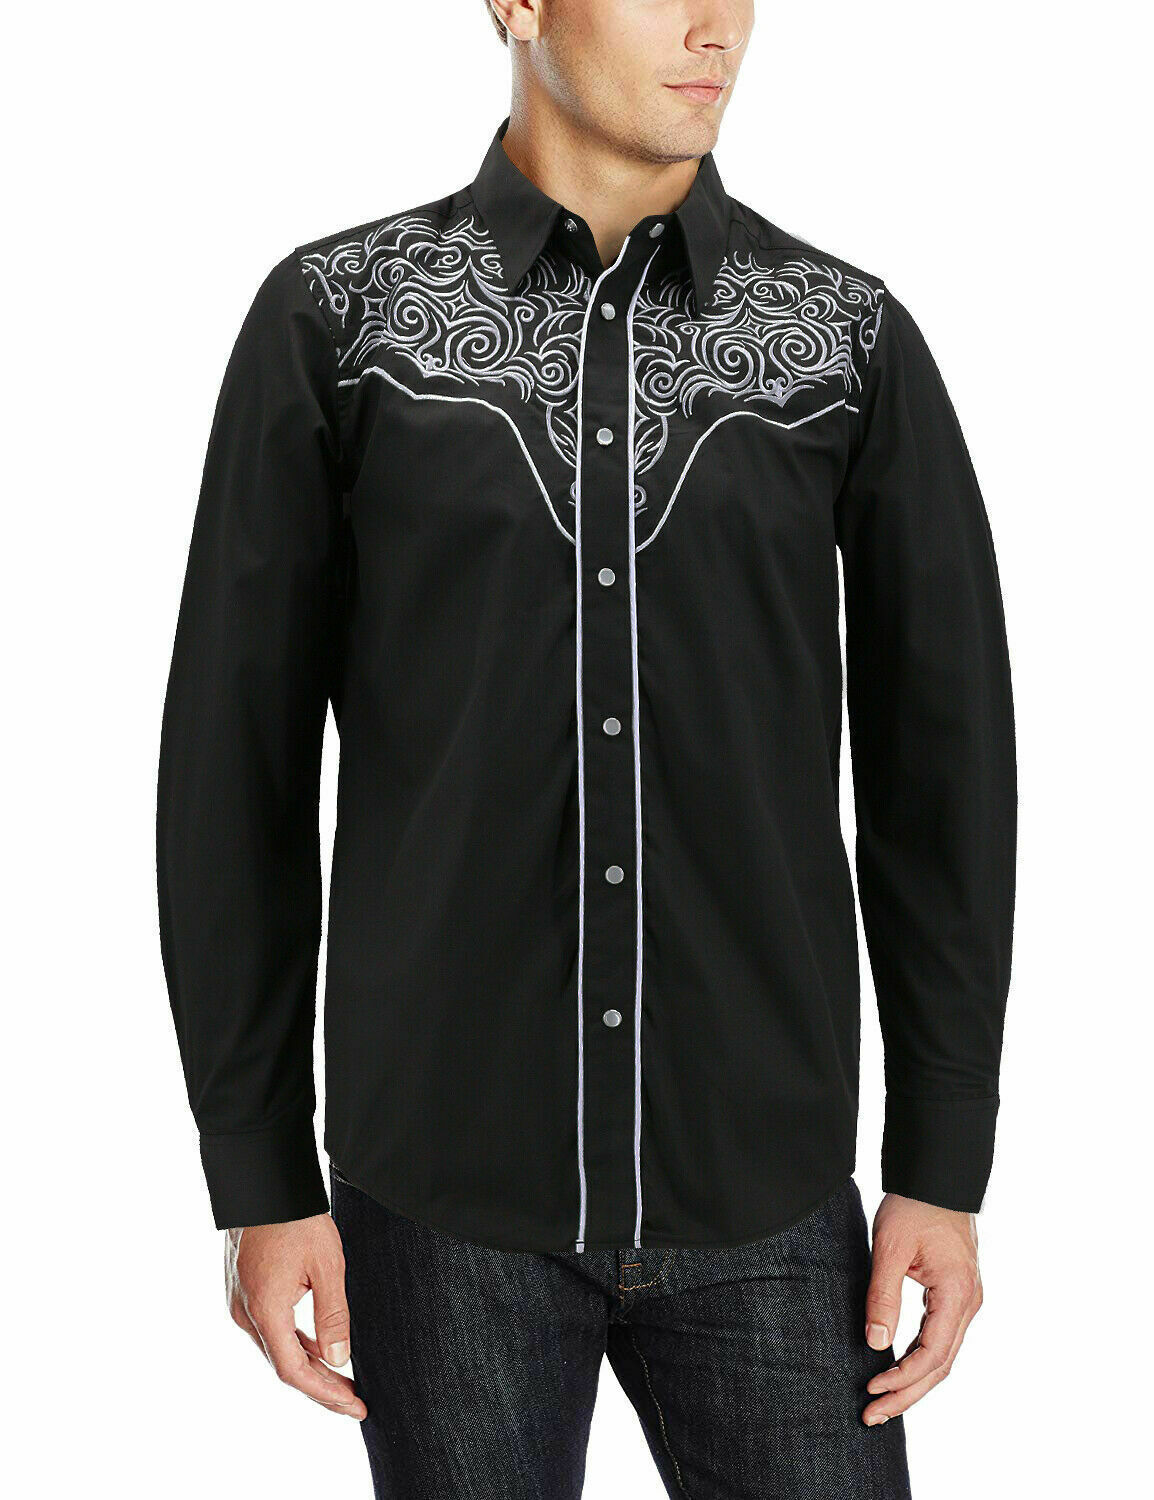 Men's Western Rodeo Style Cowboy Embroidered Tribal Print Dress Shirt w/ Defect